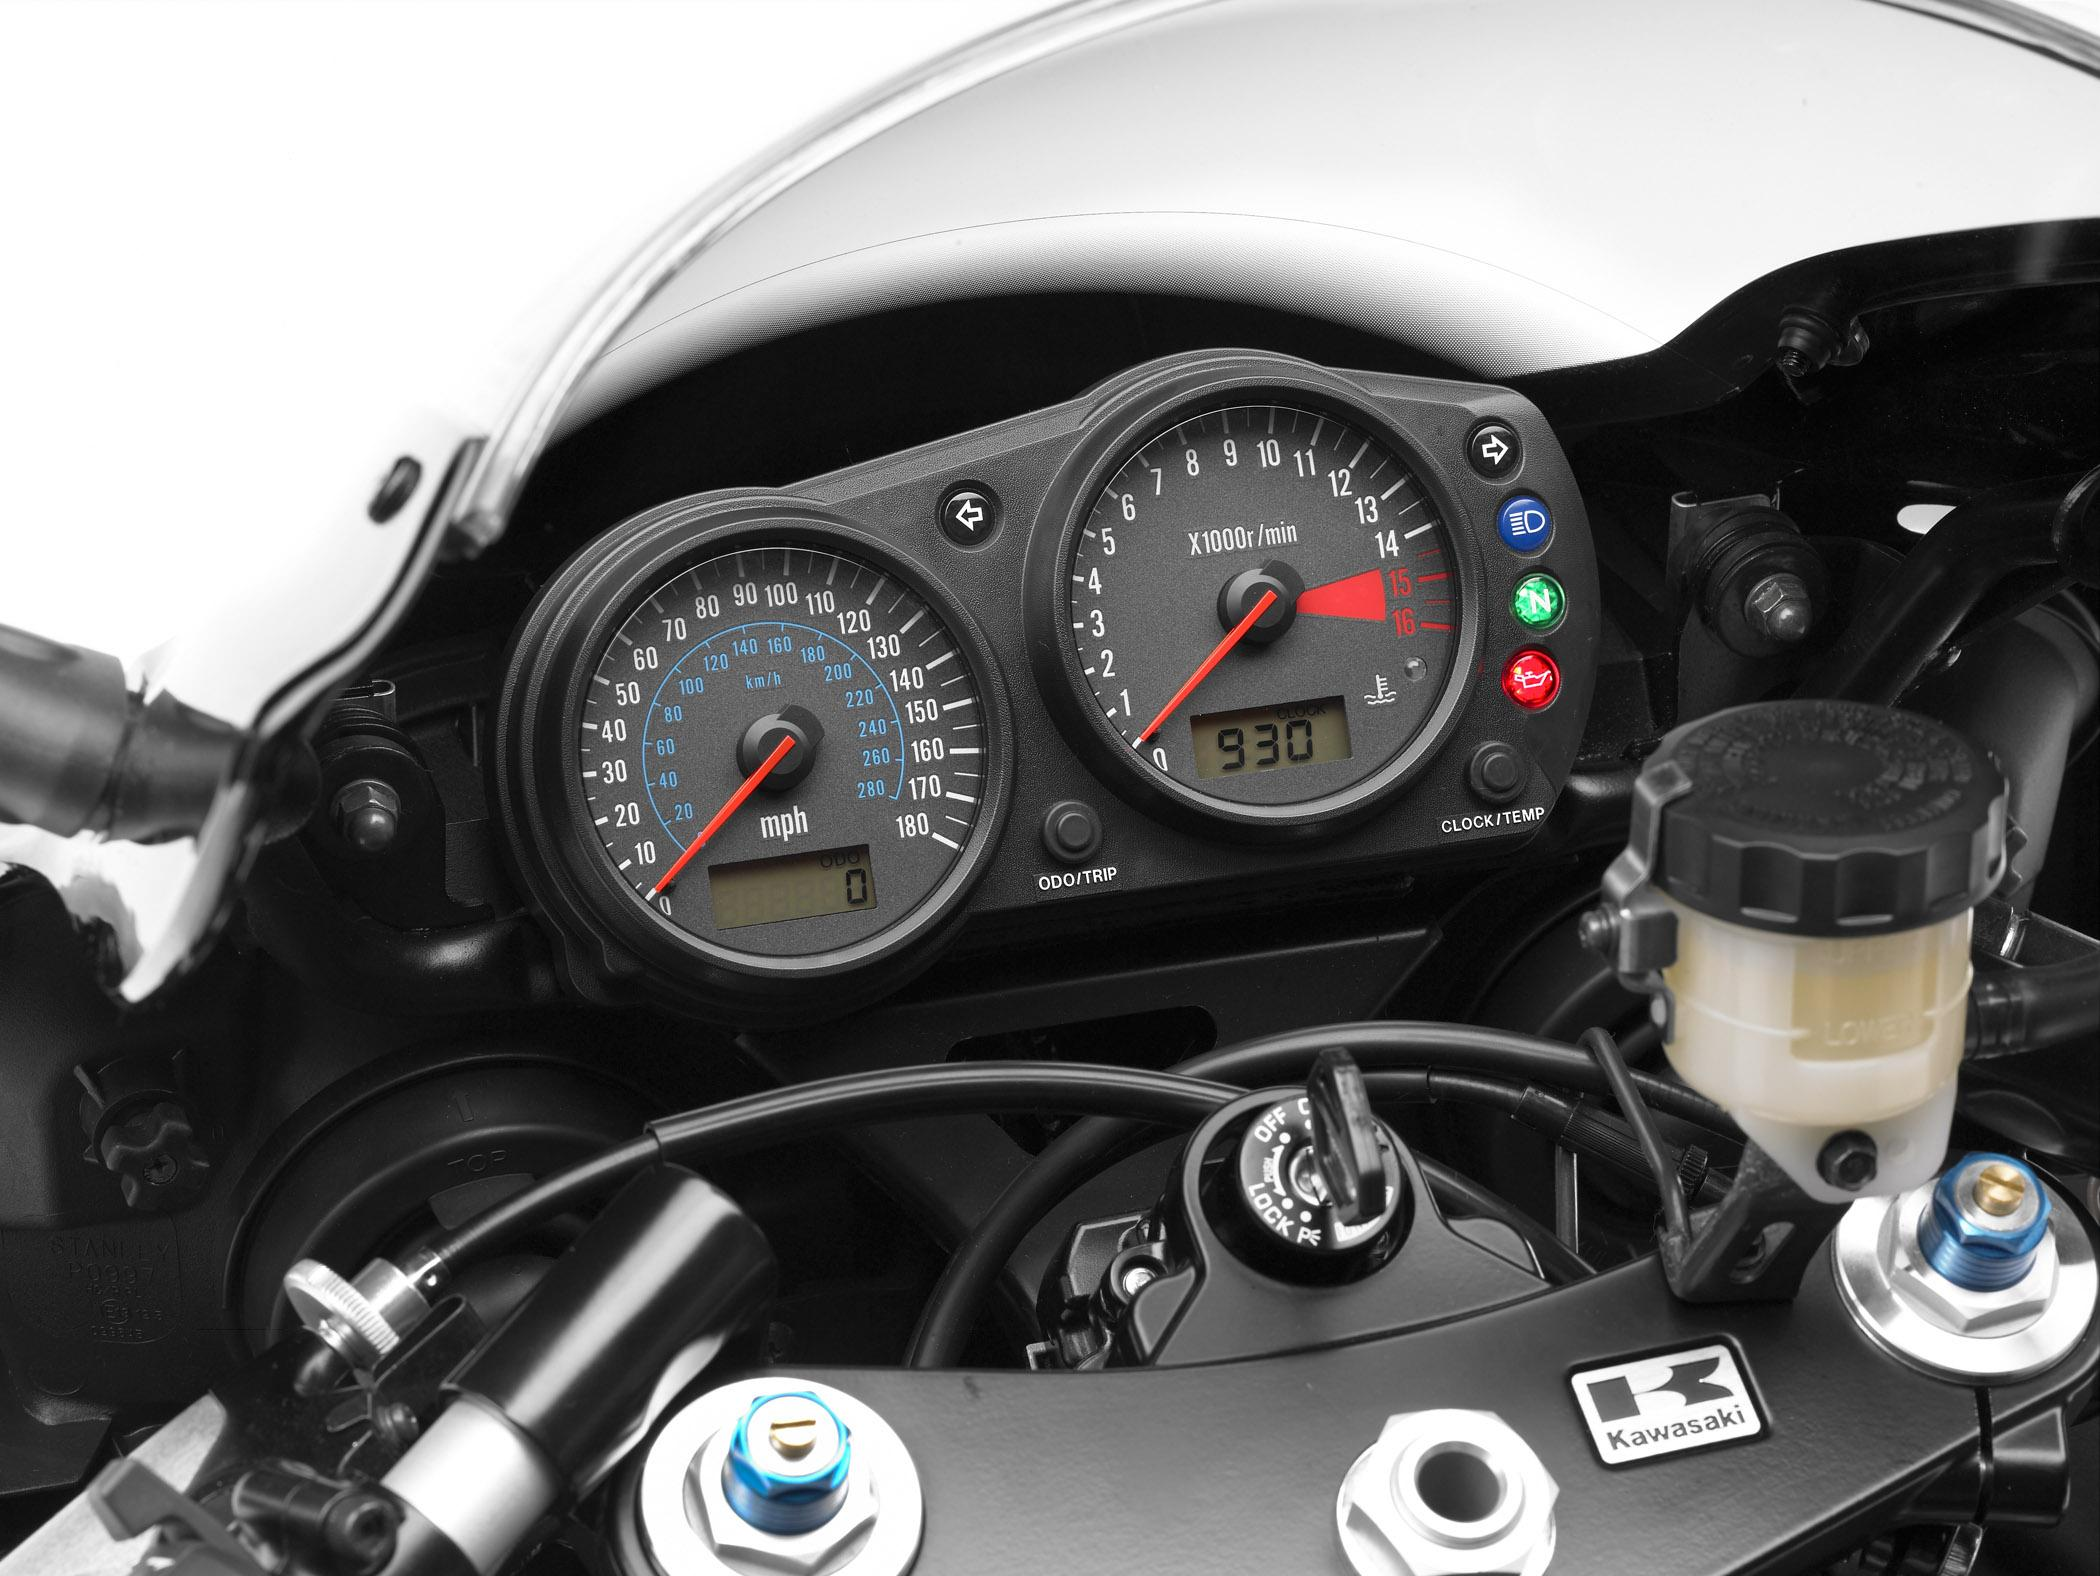 2008 Kawasaki ZZR600 | Top Speed